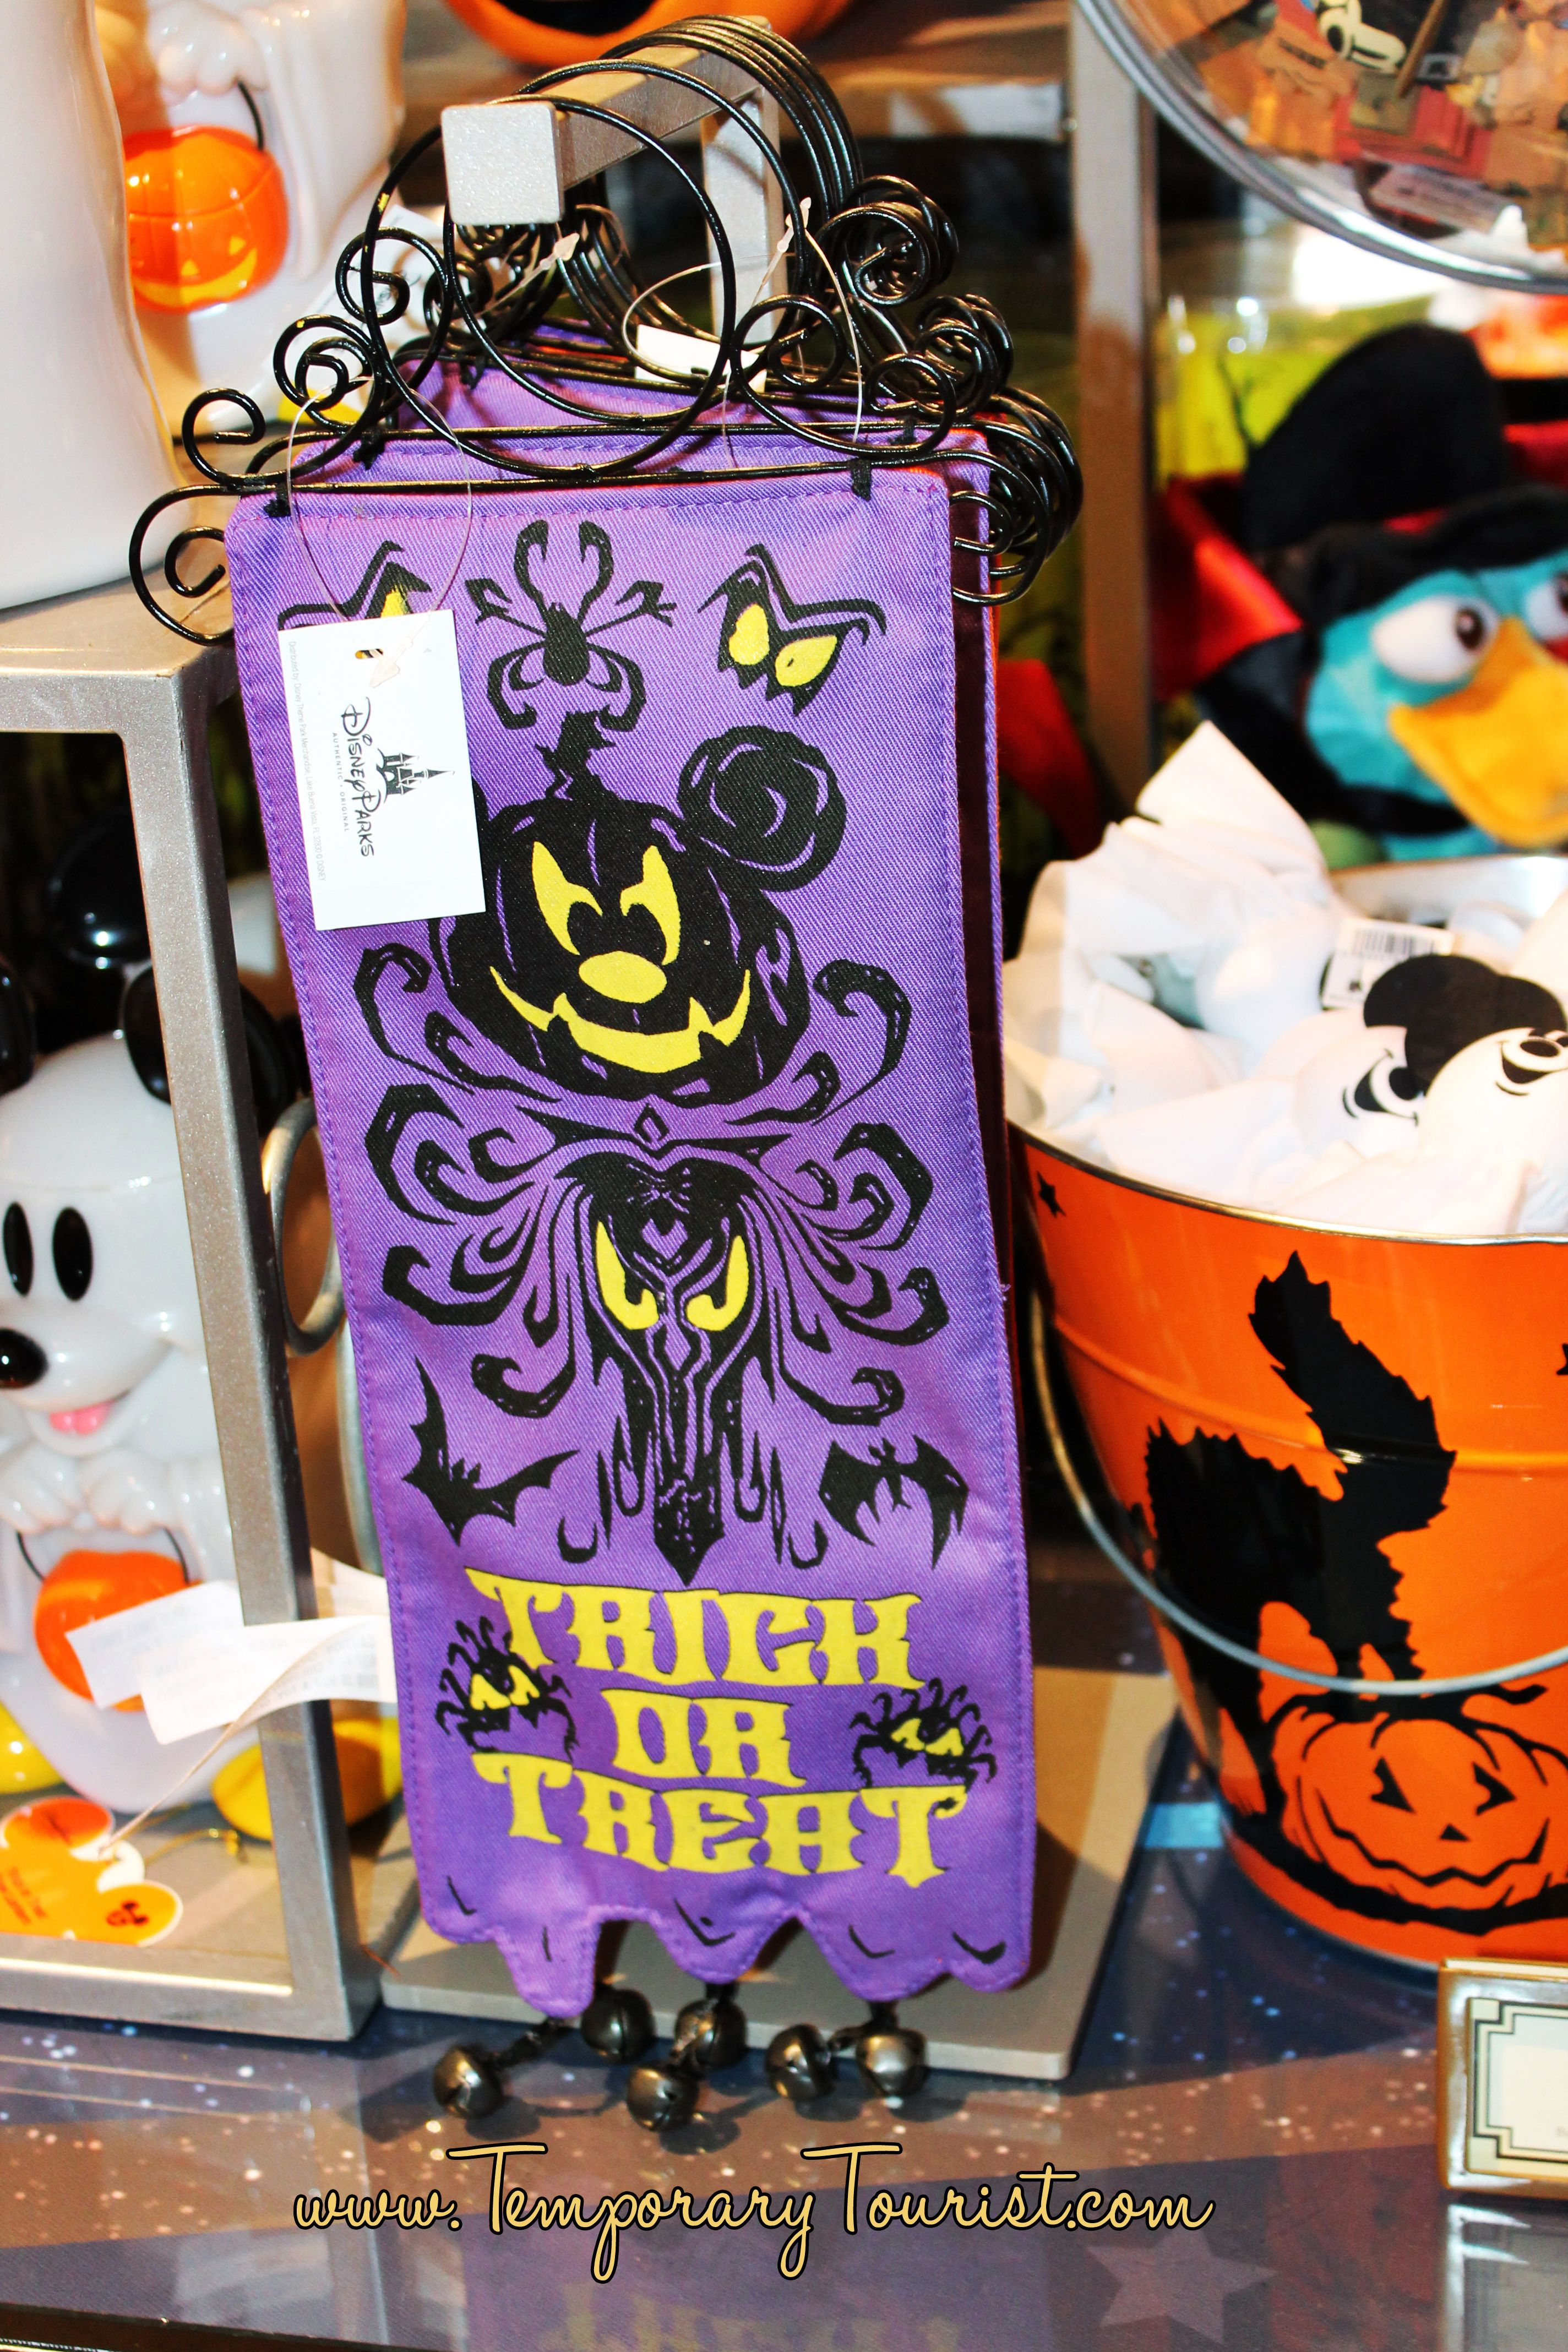 halloween merchandise in walt disney world 2013 #mickeymouse